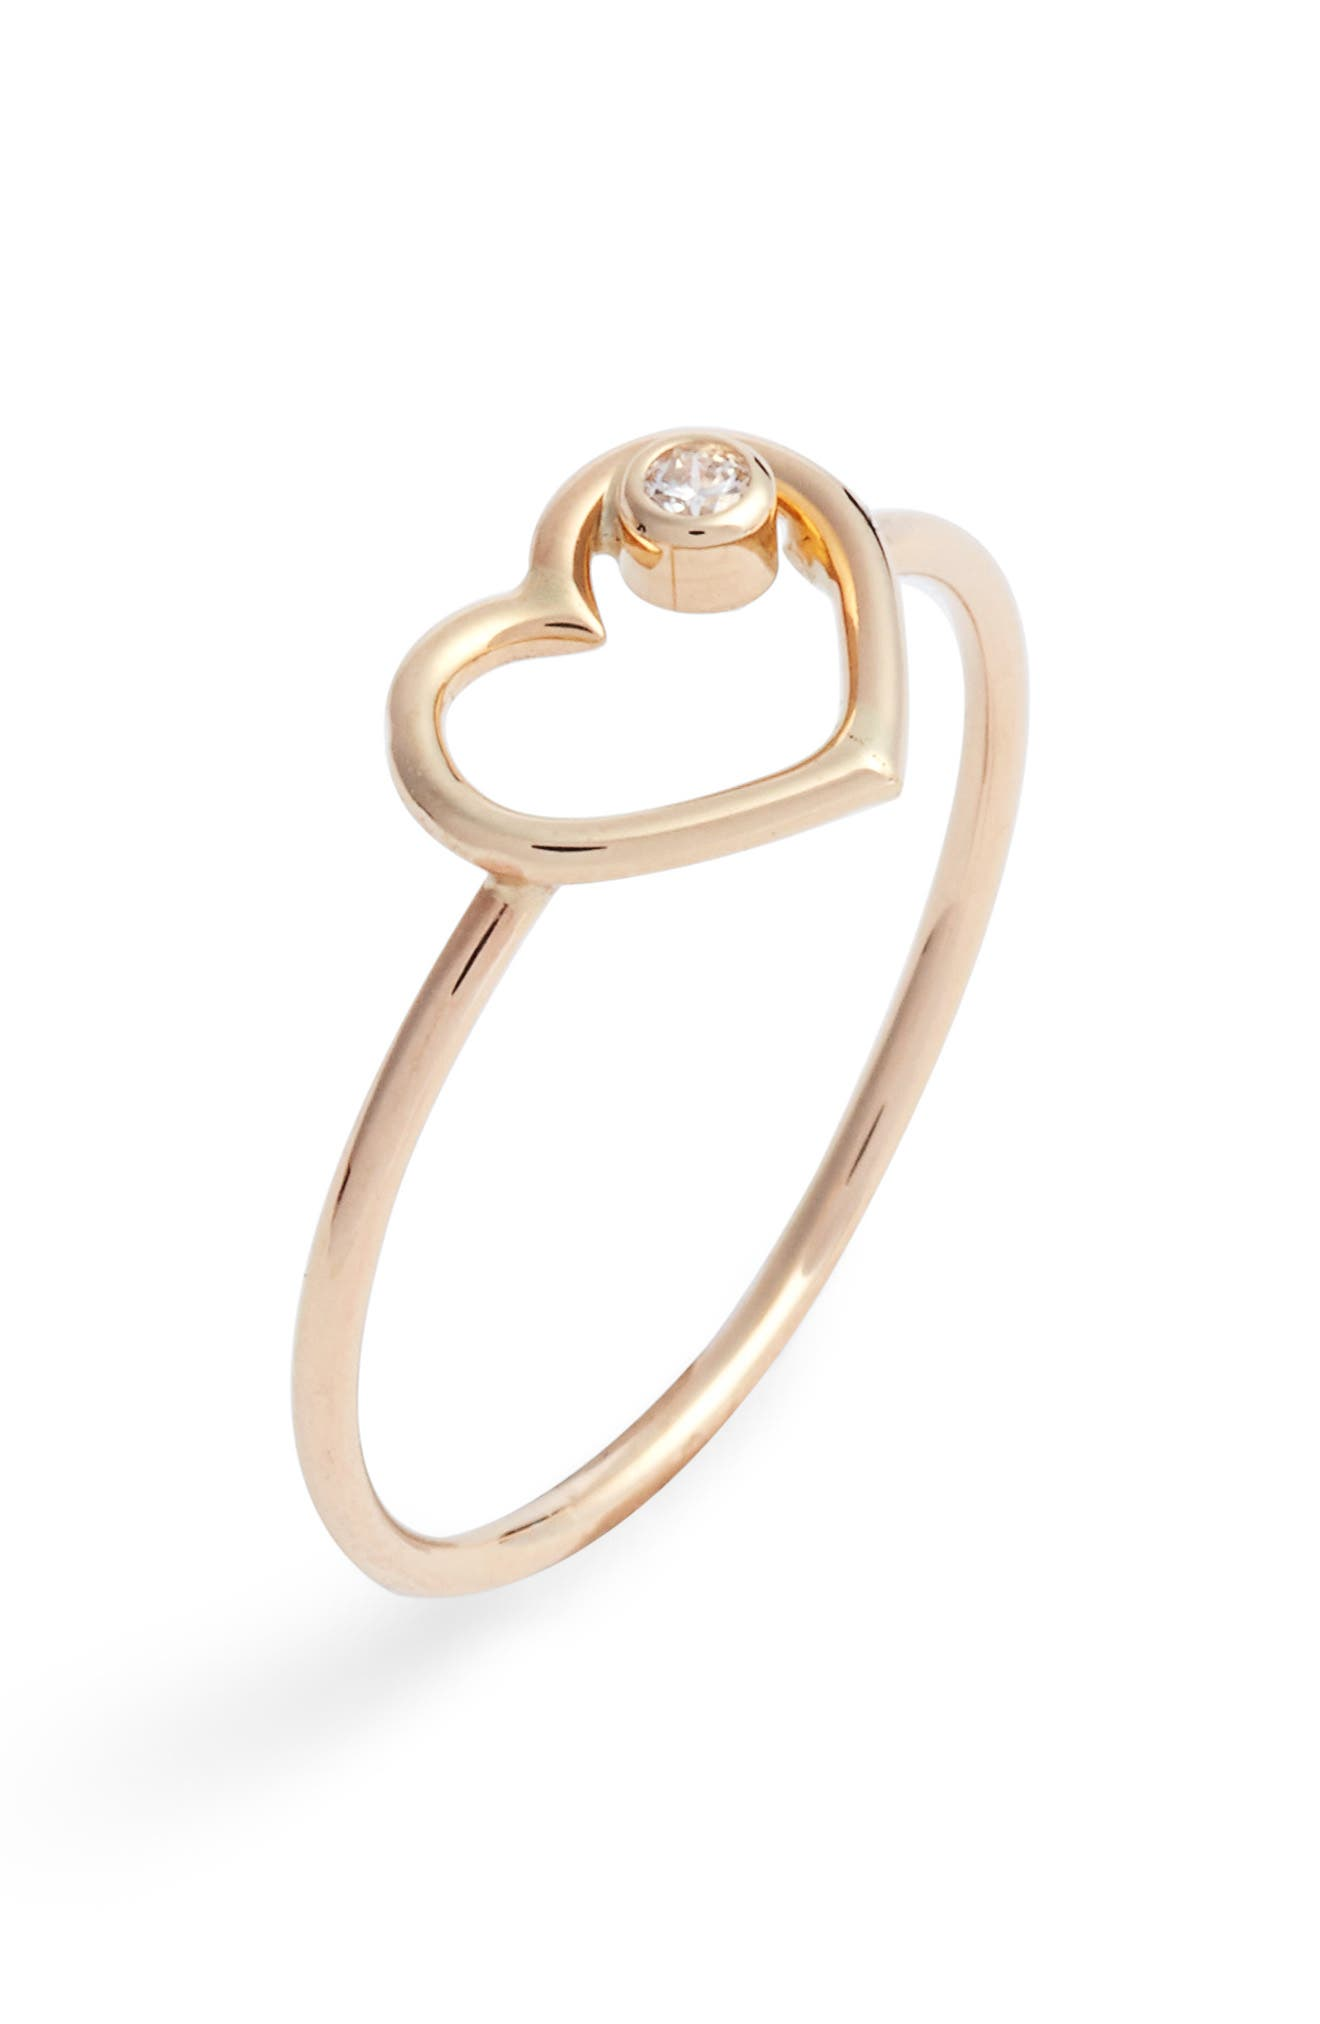 Heart of Diamond Ring,                             Main thumbnail 1, color,                             YELLOW GOLD